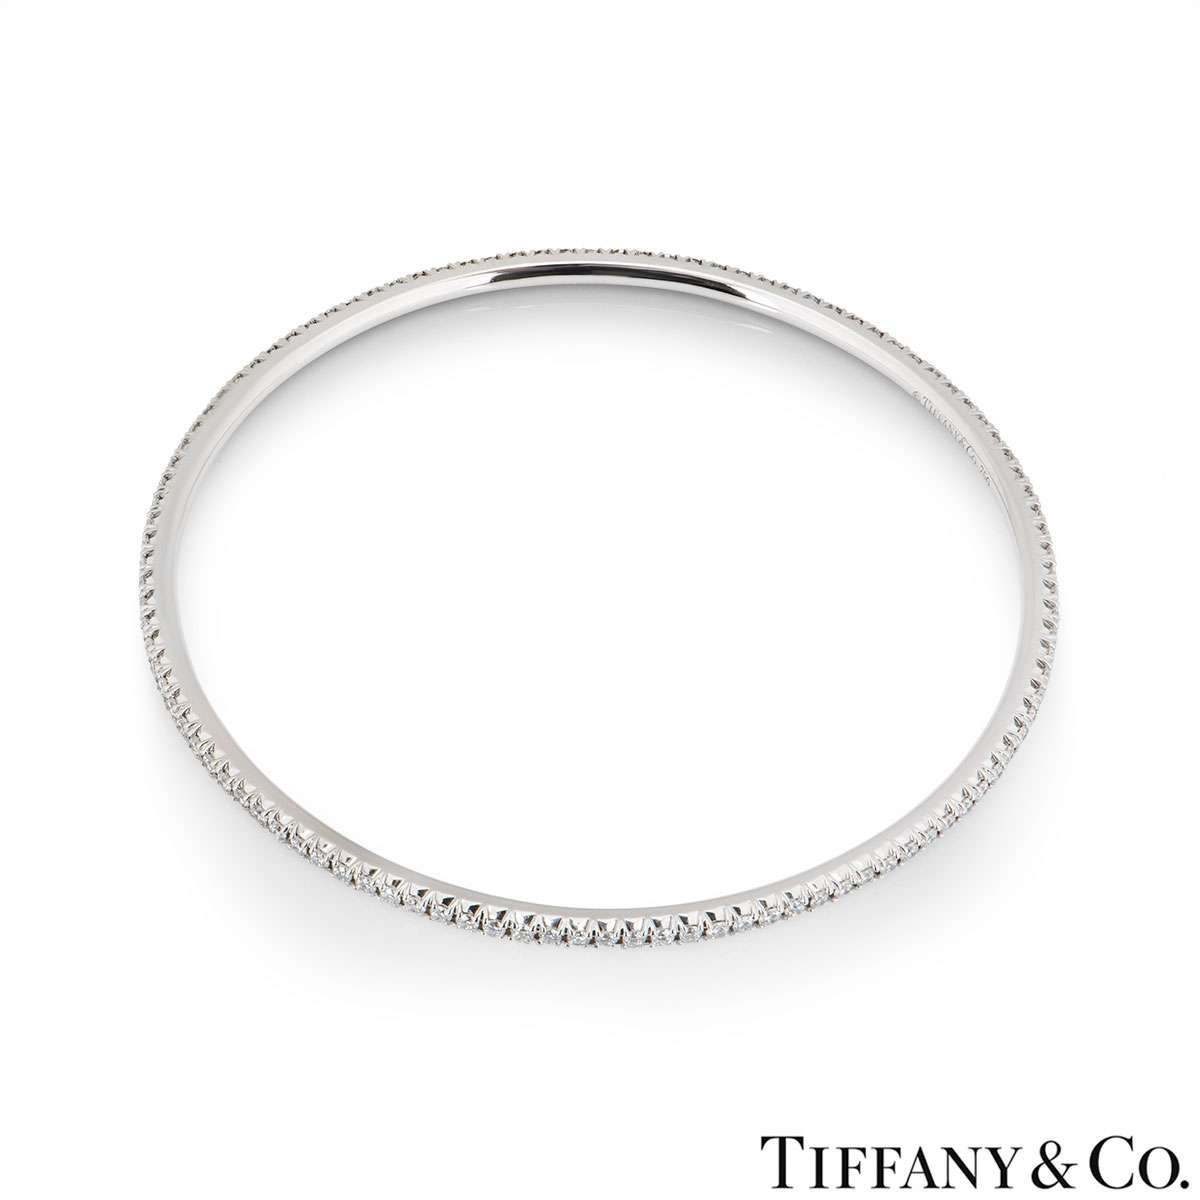 Tiffany & Co. White Gold Diamond Bangle